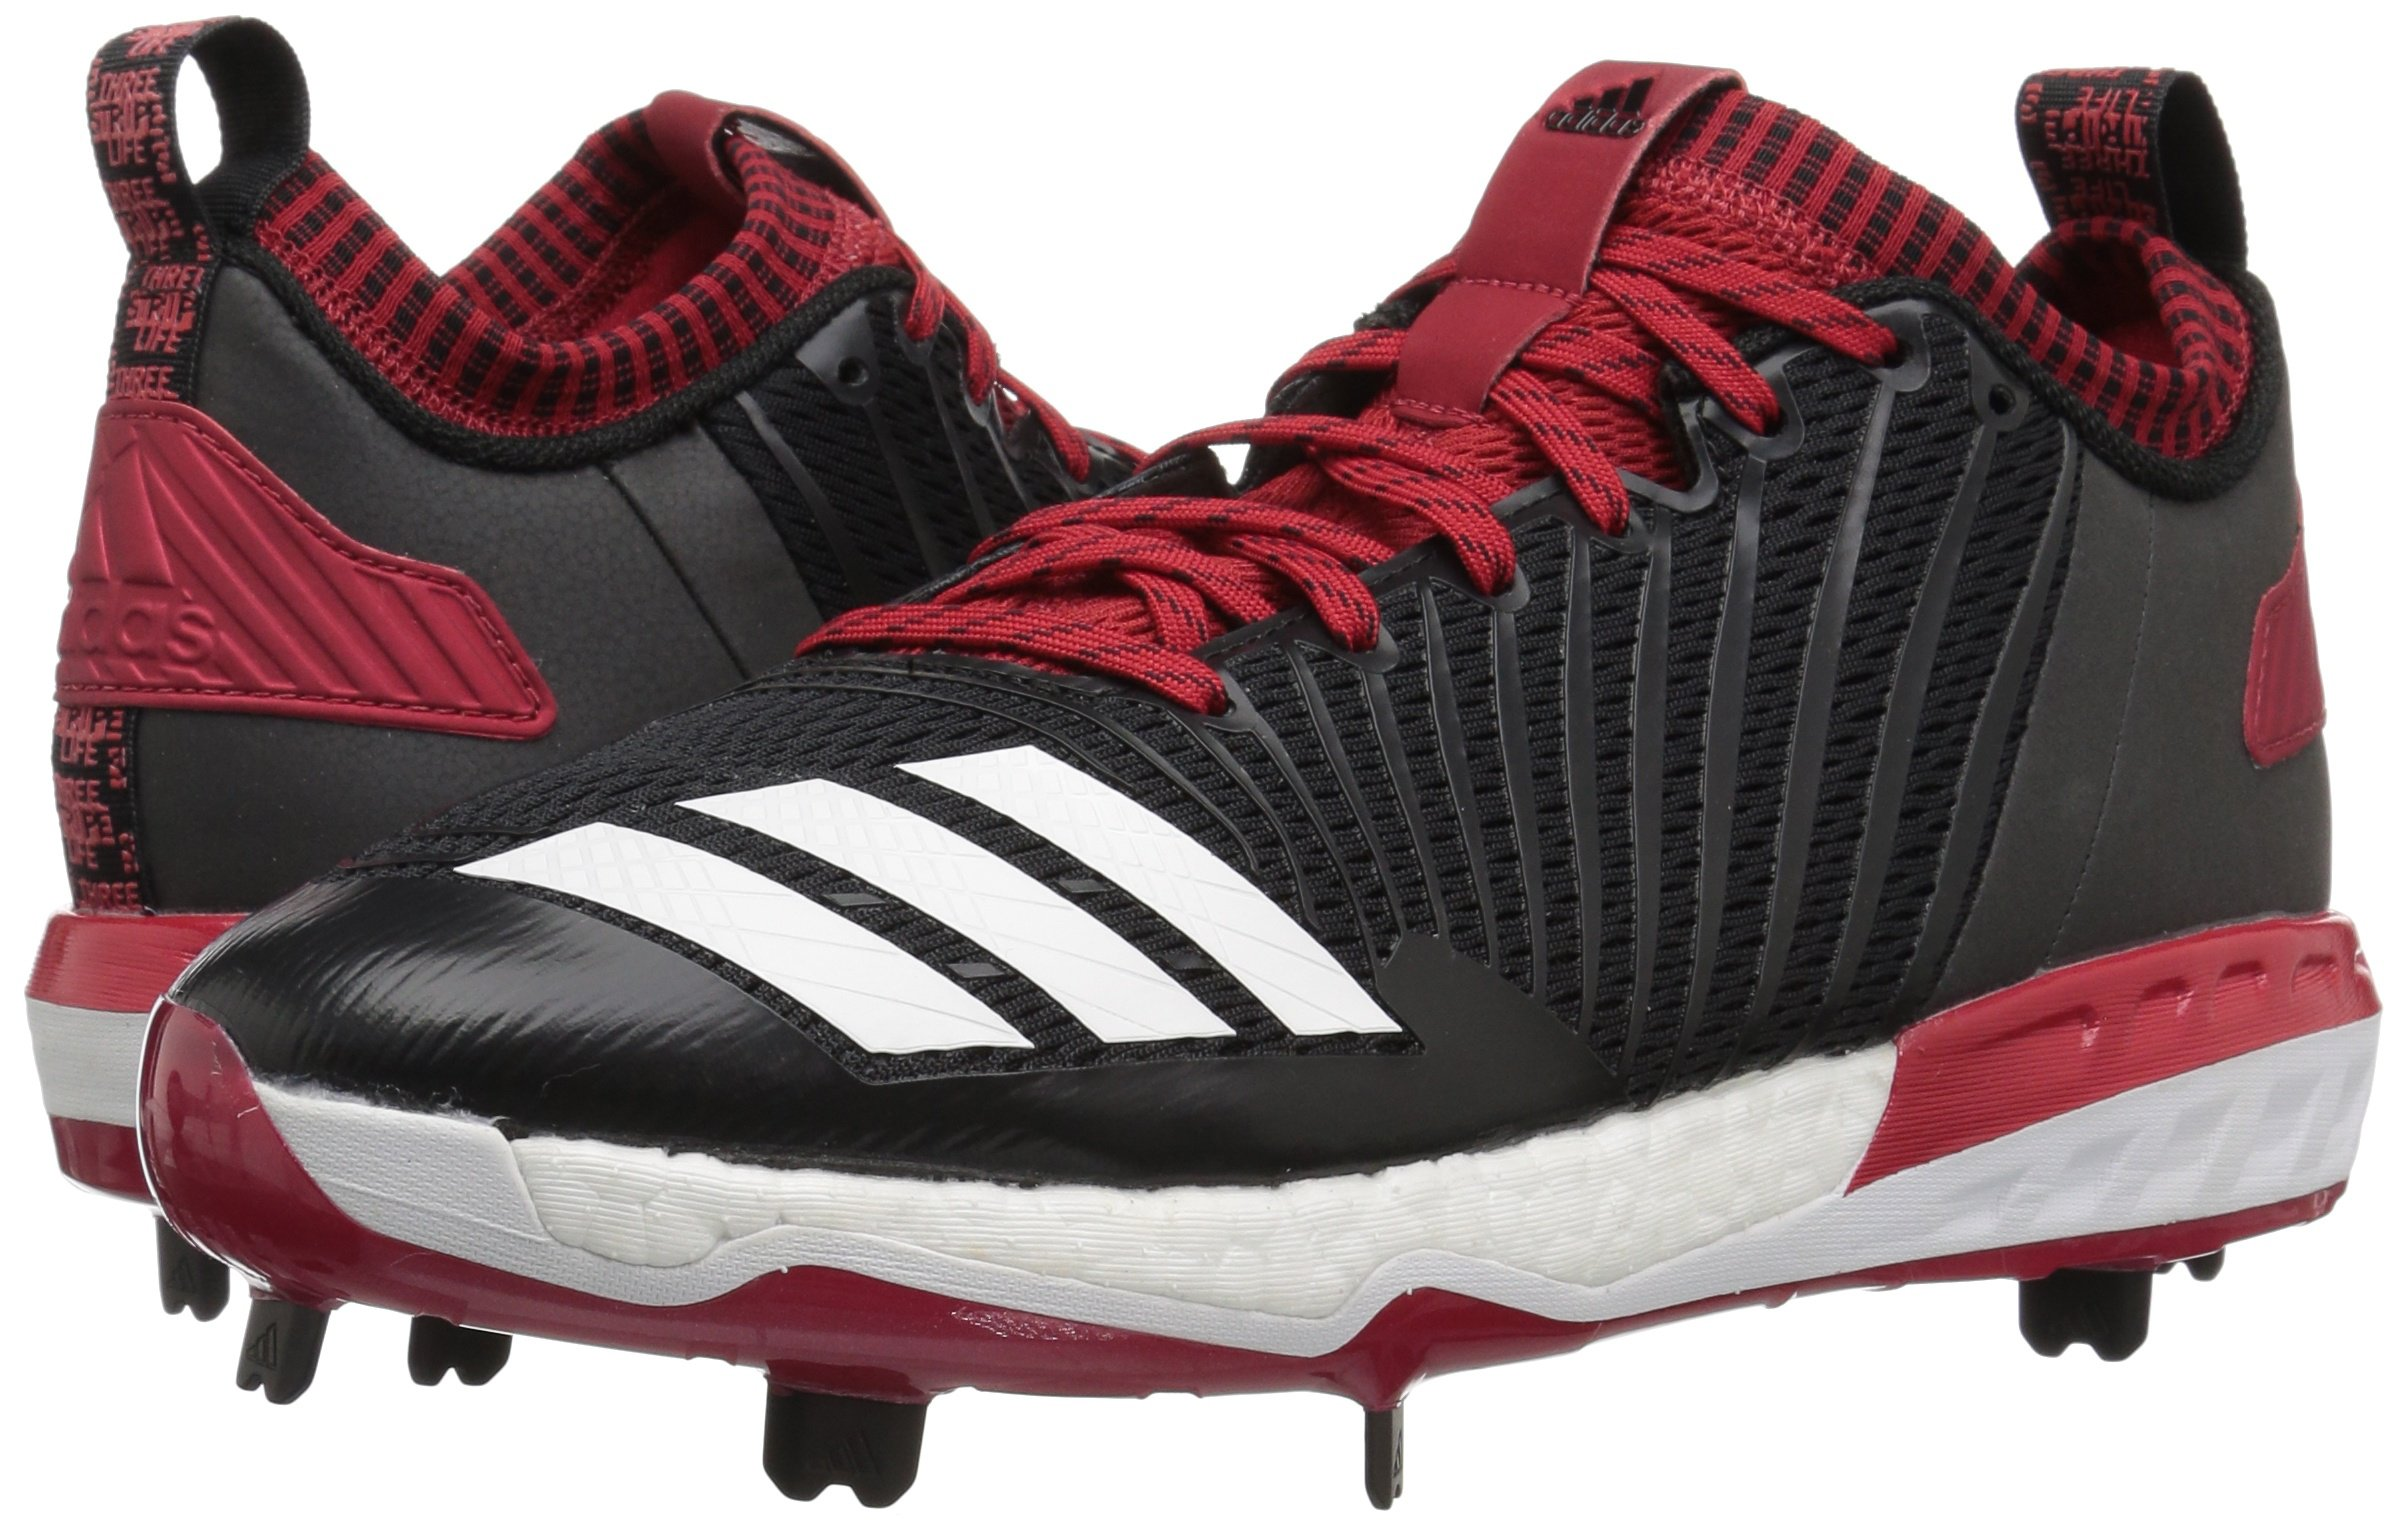 adidas Men's Freak X Carbon Mid Baseball Shoe, Black/White/Power RED, 7.5 Medium US by adidas (Image #6)